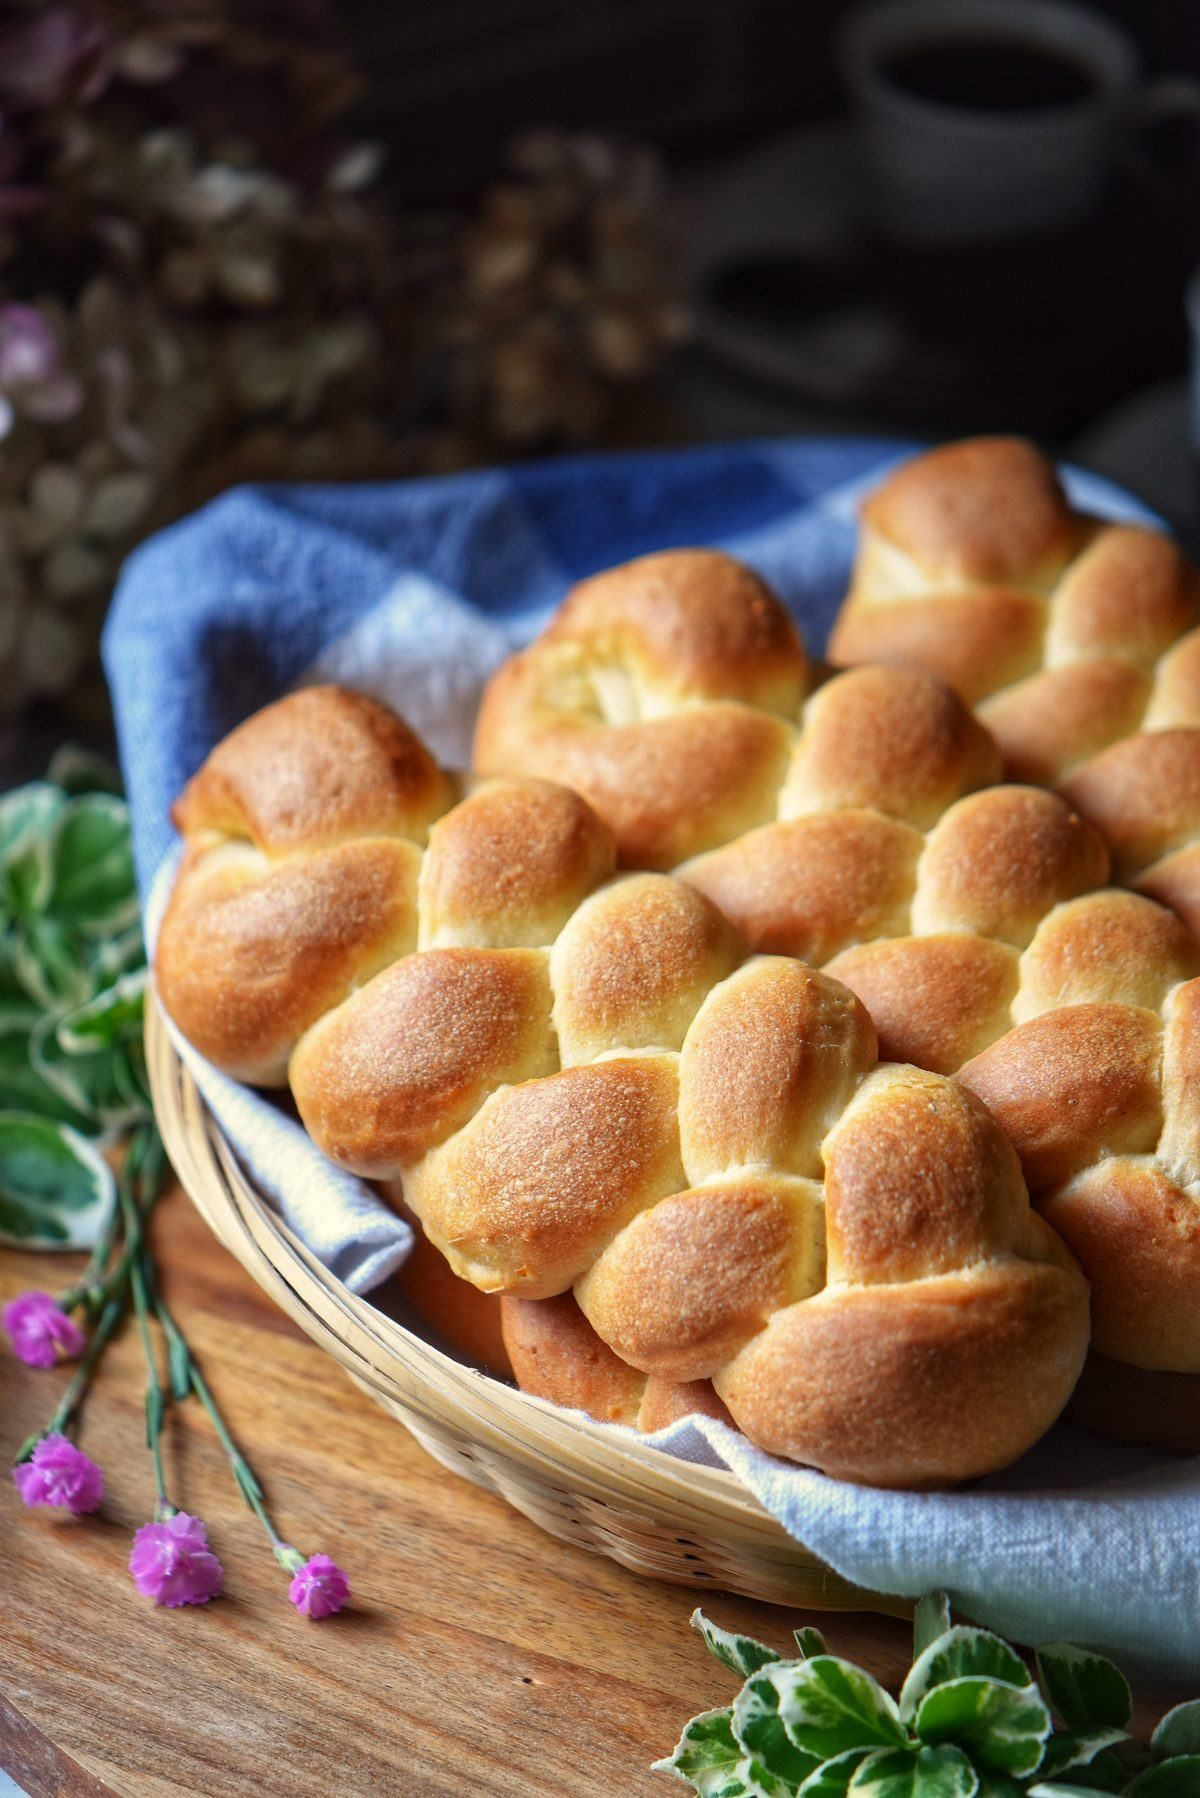 This Braided Sweet Bread Recipe Has A Soft And Tender Crumb That Is Light And Airy The Addit In 2020 Buttermilk Recipes Bread Recipes Sweet Braided Sweet Bread Recipe